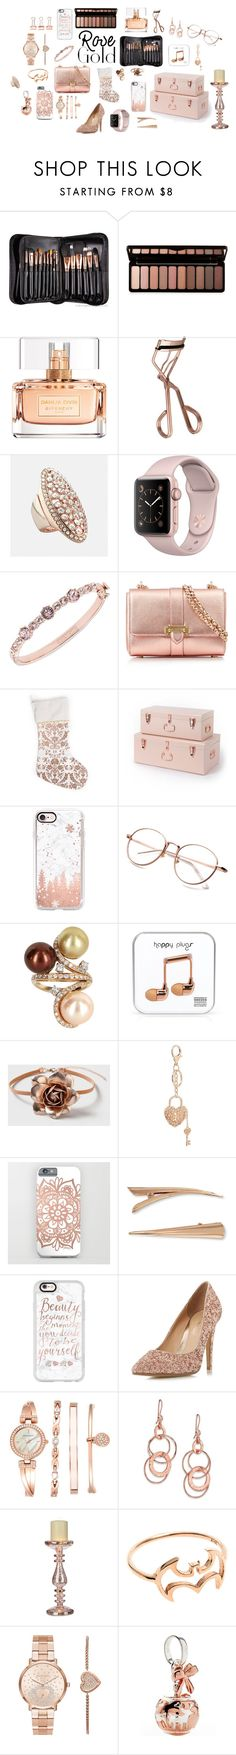 """""""Rose Gold Obsessed"""" by stephaniefb ❤ liked on Polyvore featuring Sigma, Givenchy, Tweezerman, Avenue, Aspinal of London, Casetify, Vintage, Happy Plugs, Dorothy Perkins and Charlotte Russe"""